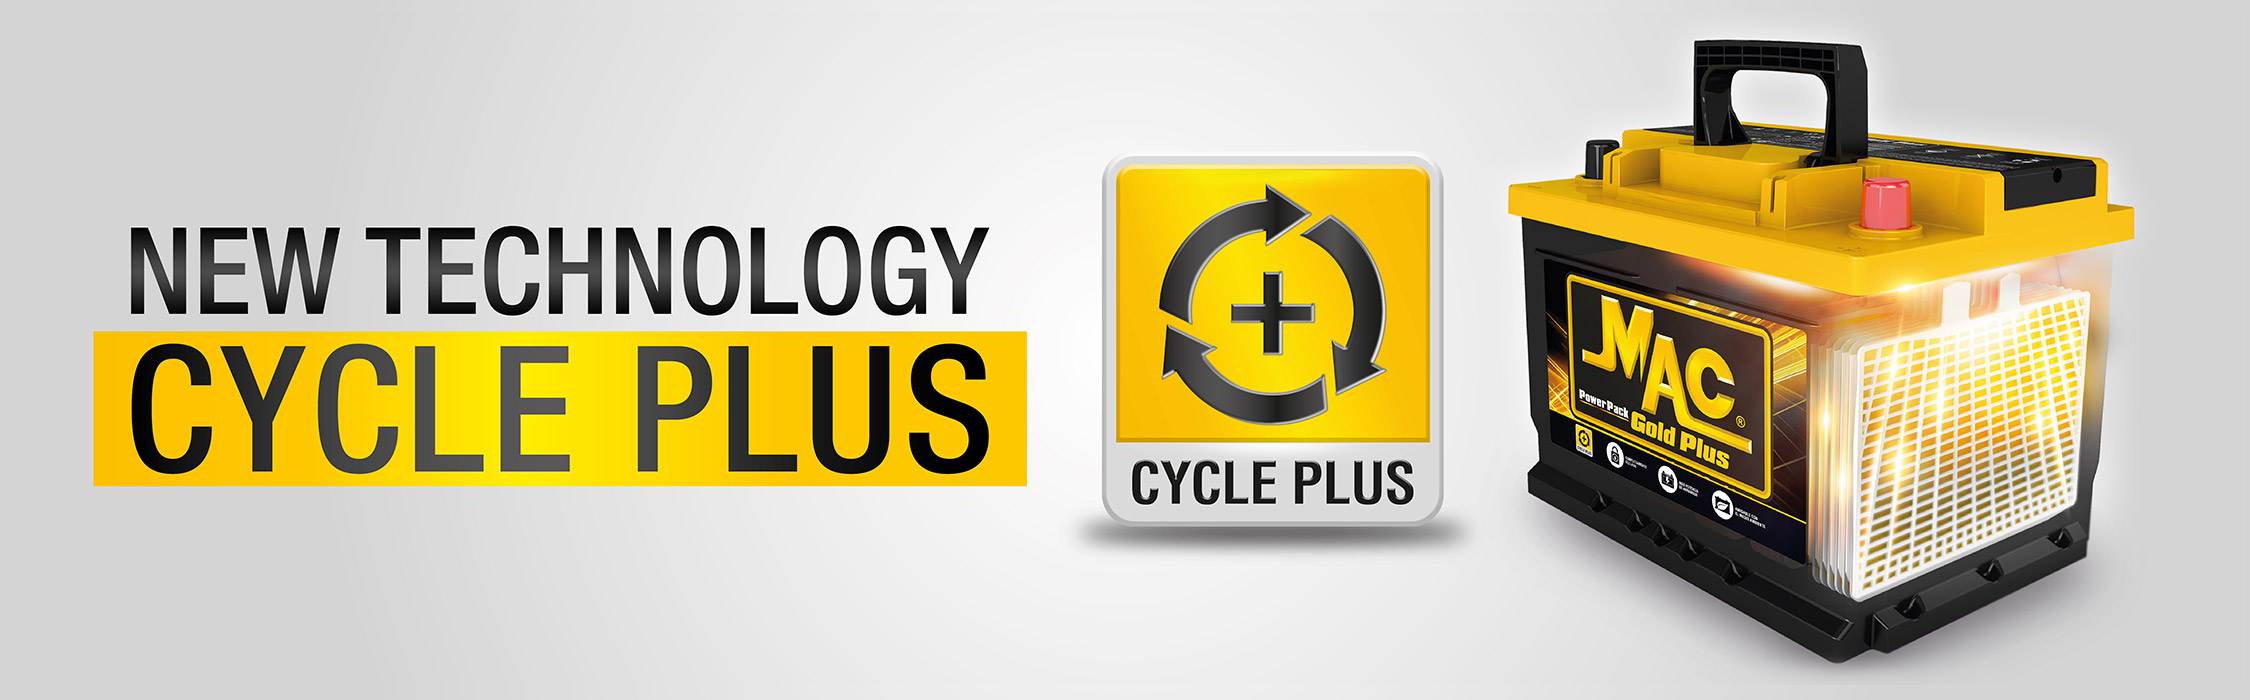 New Technology Cycle Plus batteries